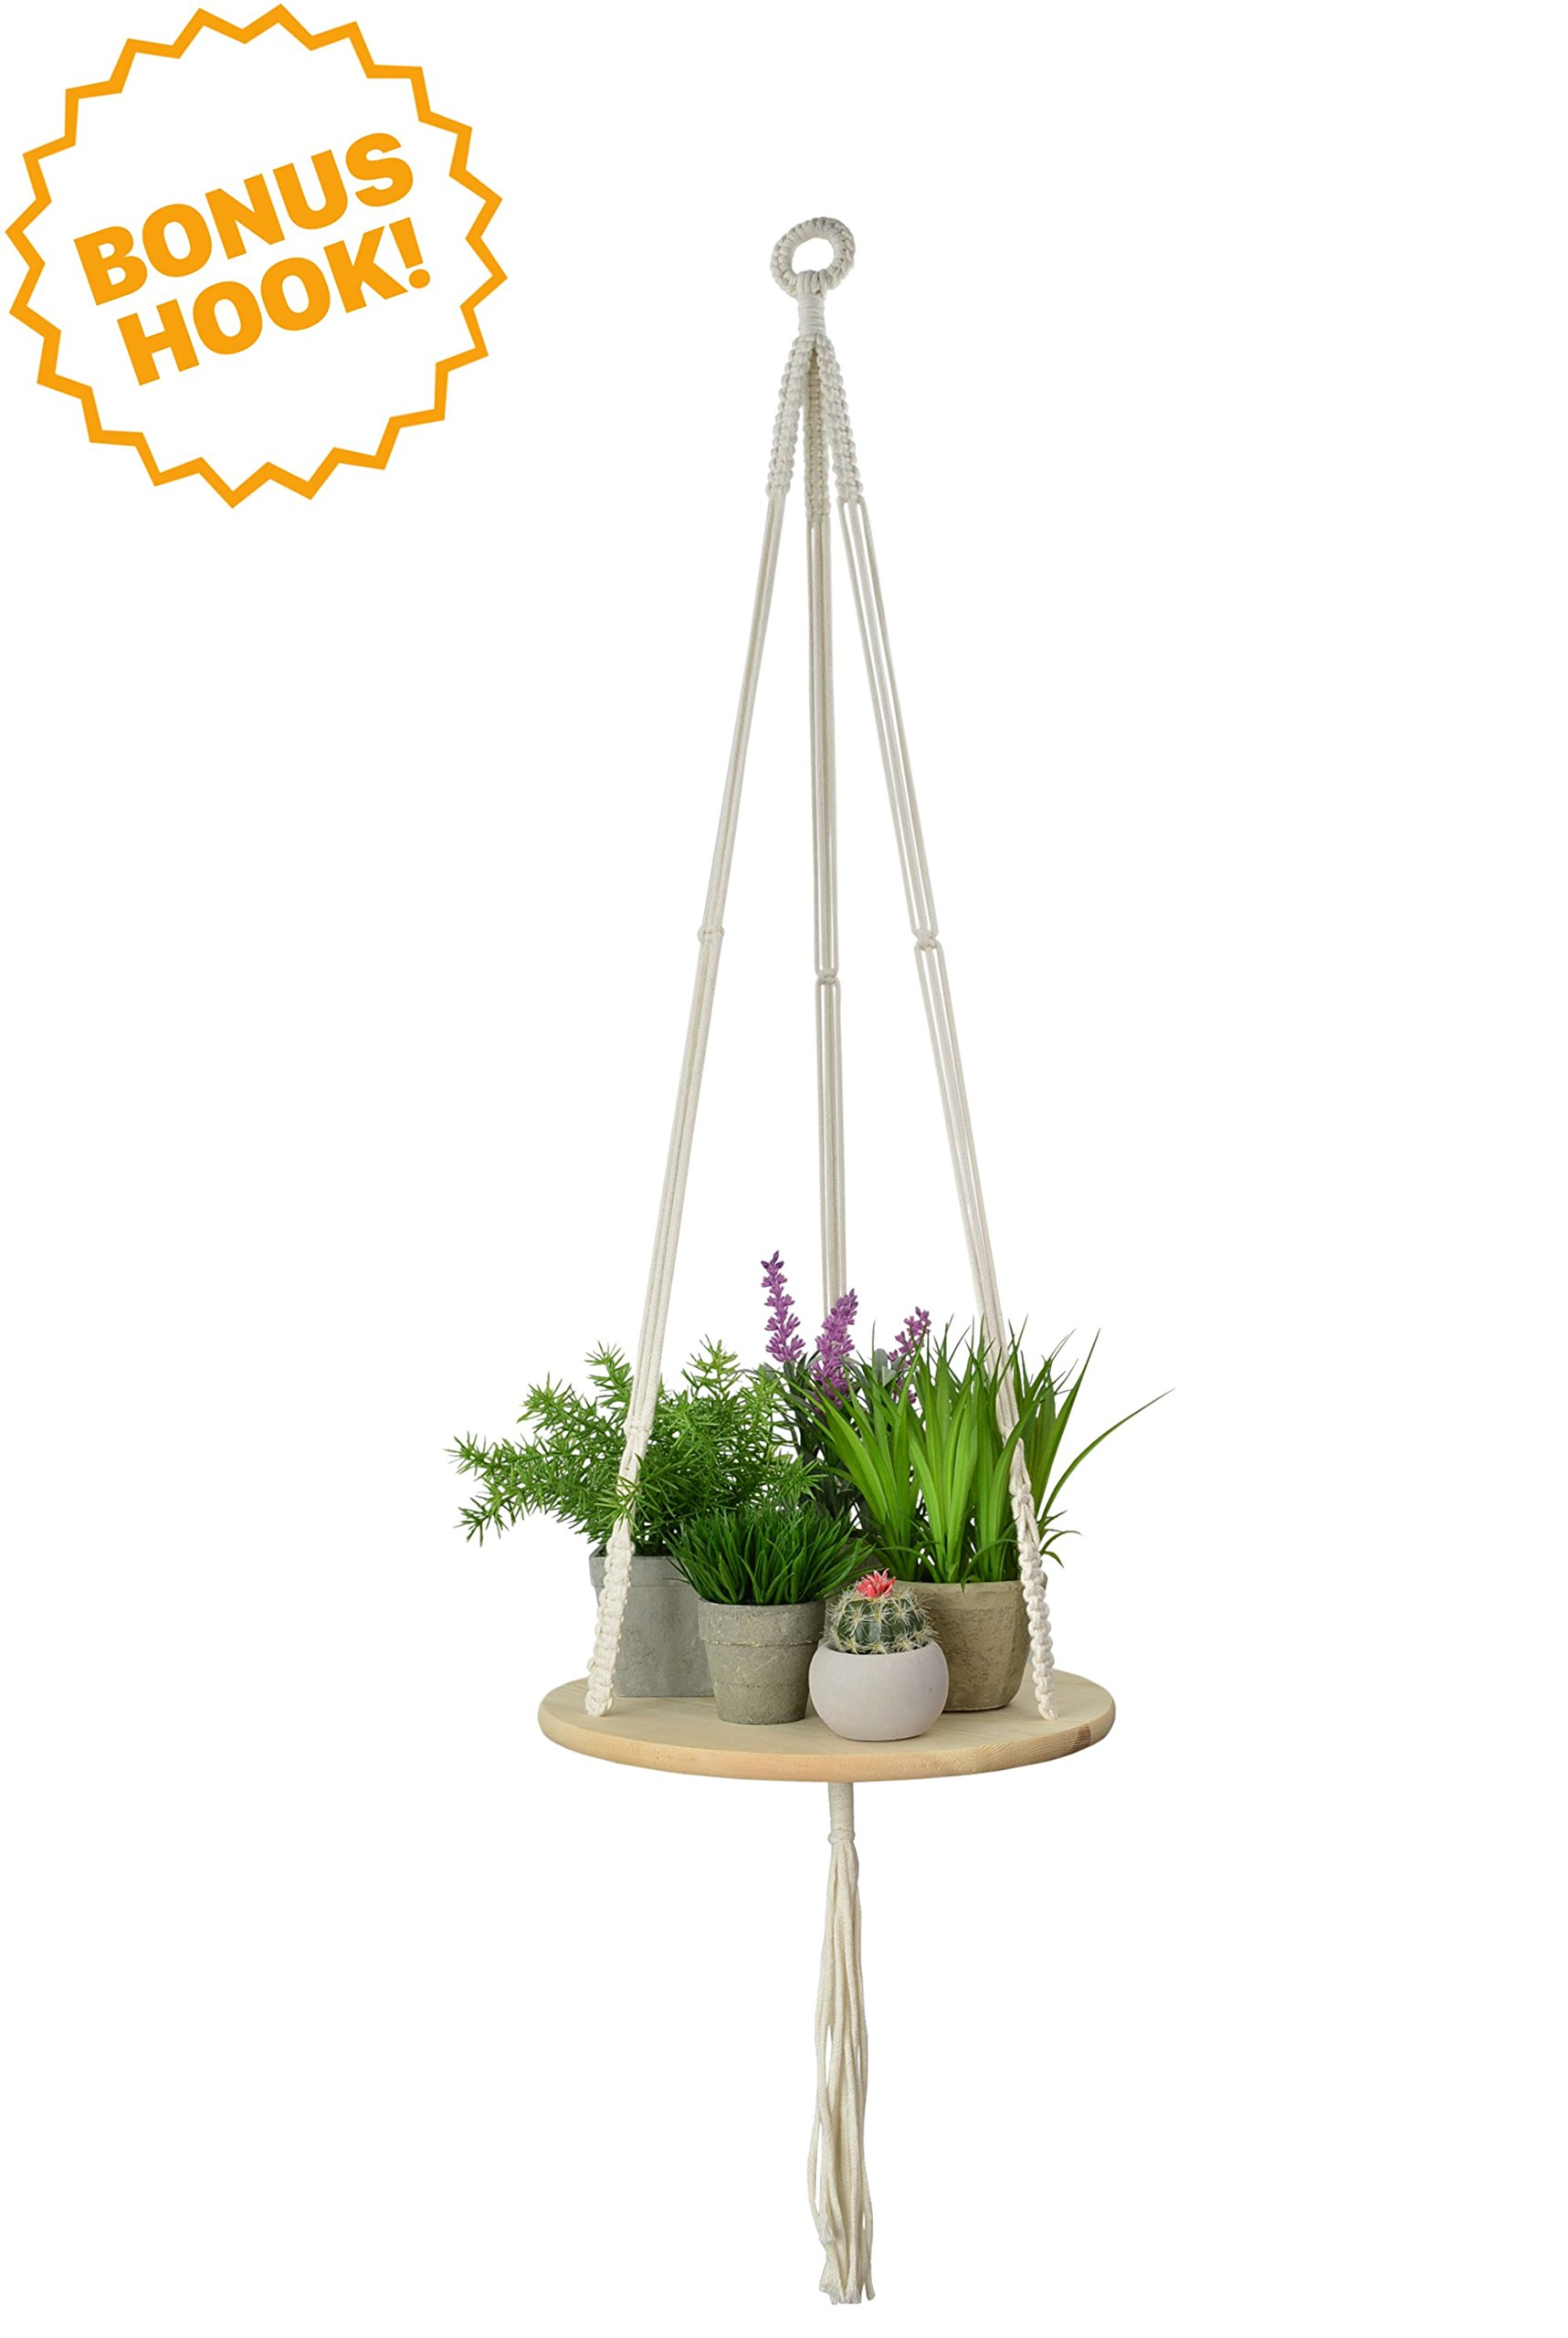 Macrame Plant Hanger - Indoor/Outdoor Hanging Shelf Planter - BONUS HOOK INCLUDED!! - Boho Wall Decor for Succulents, Cactus, Air Plants & Crystal Display Sold By My Urban Crafts - 43 Inches (Round)